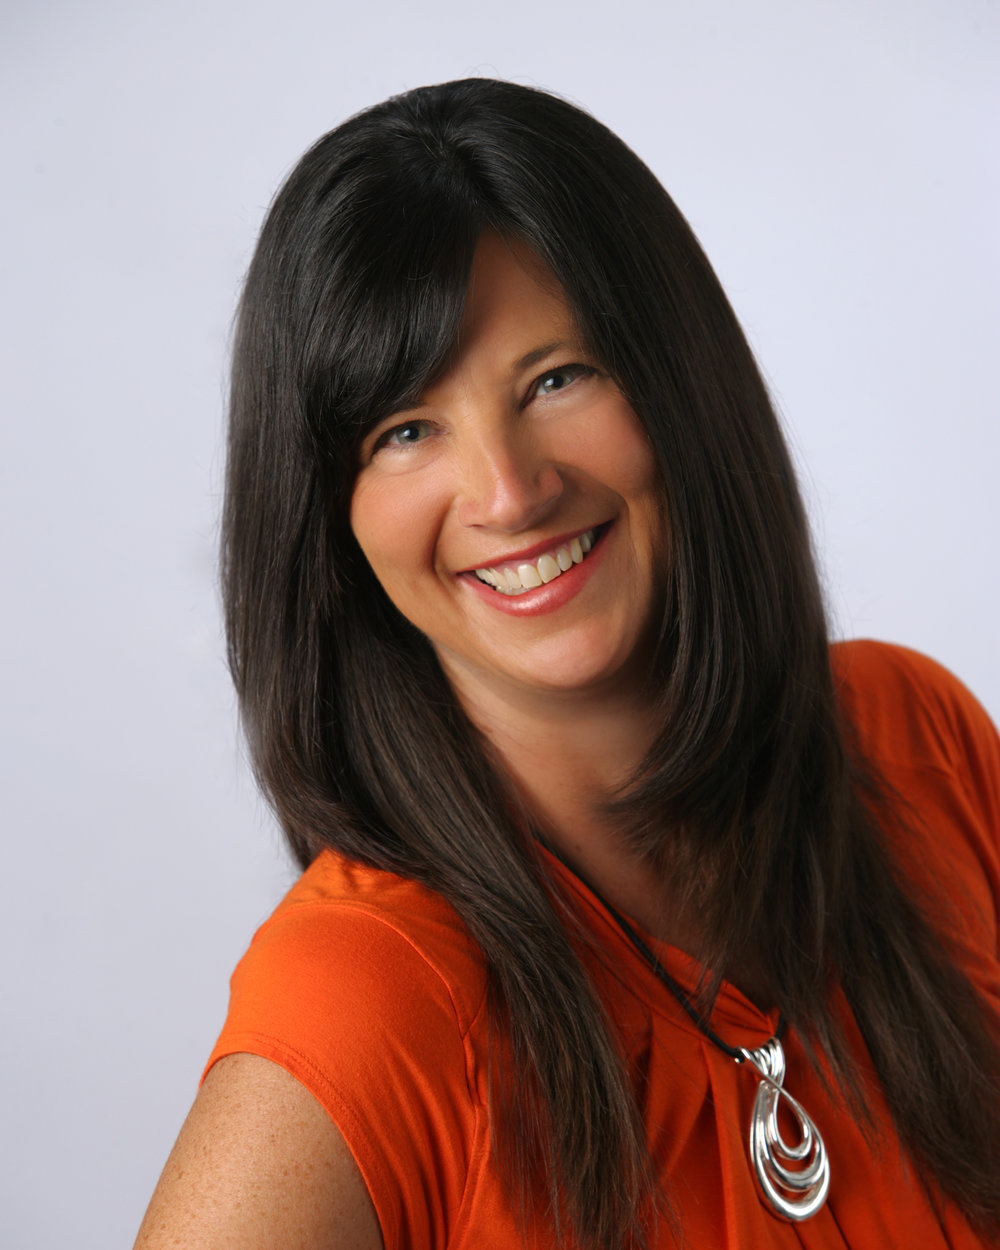 Laura Angotti - Life Coach & Motivational Speaker